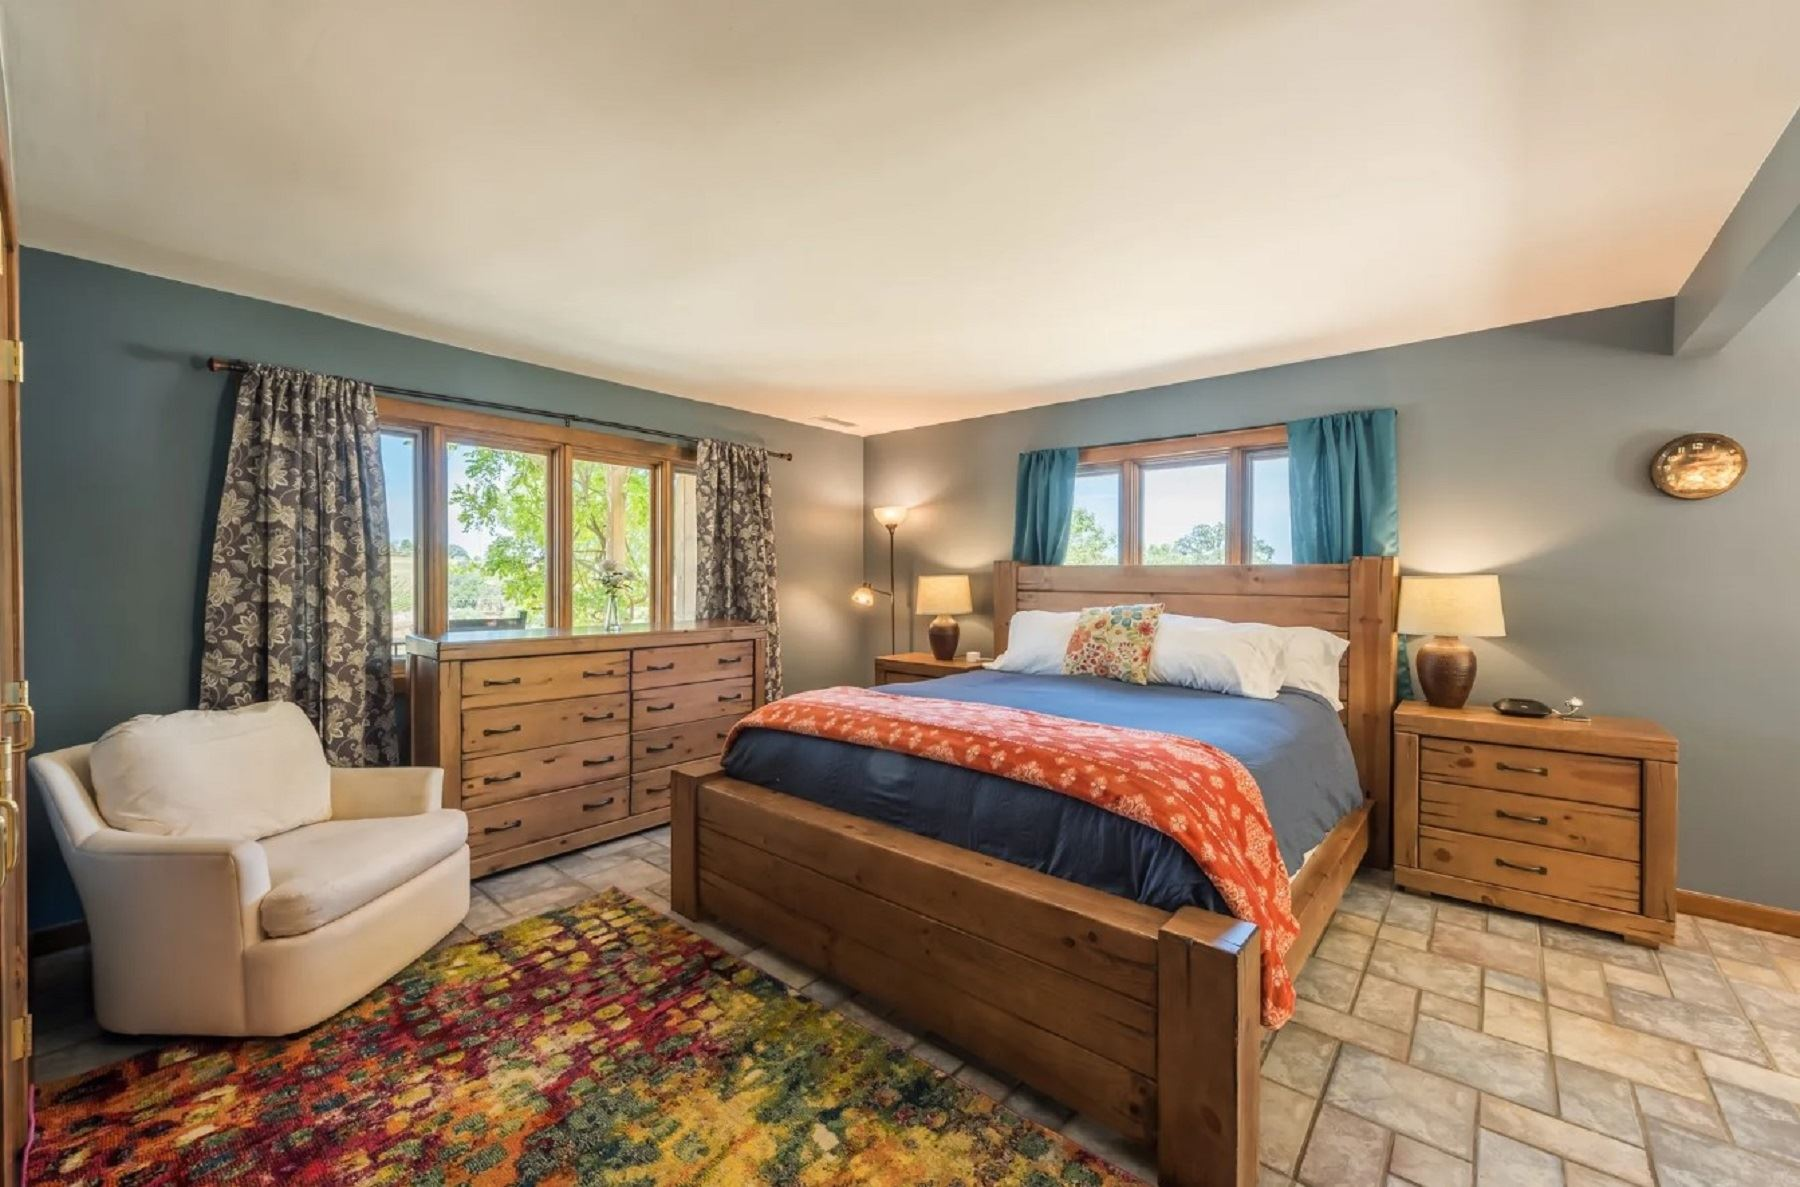 Harvest Ridge Ranch - Interior - Bedroom with view of rug and recliner by the bed